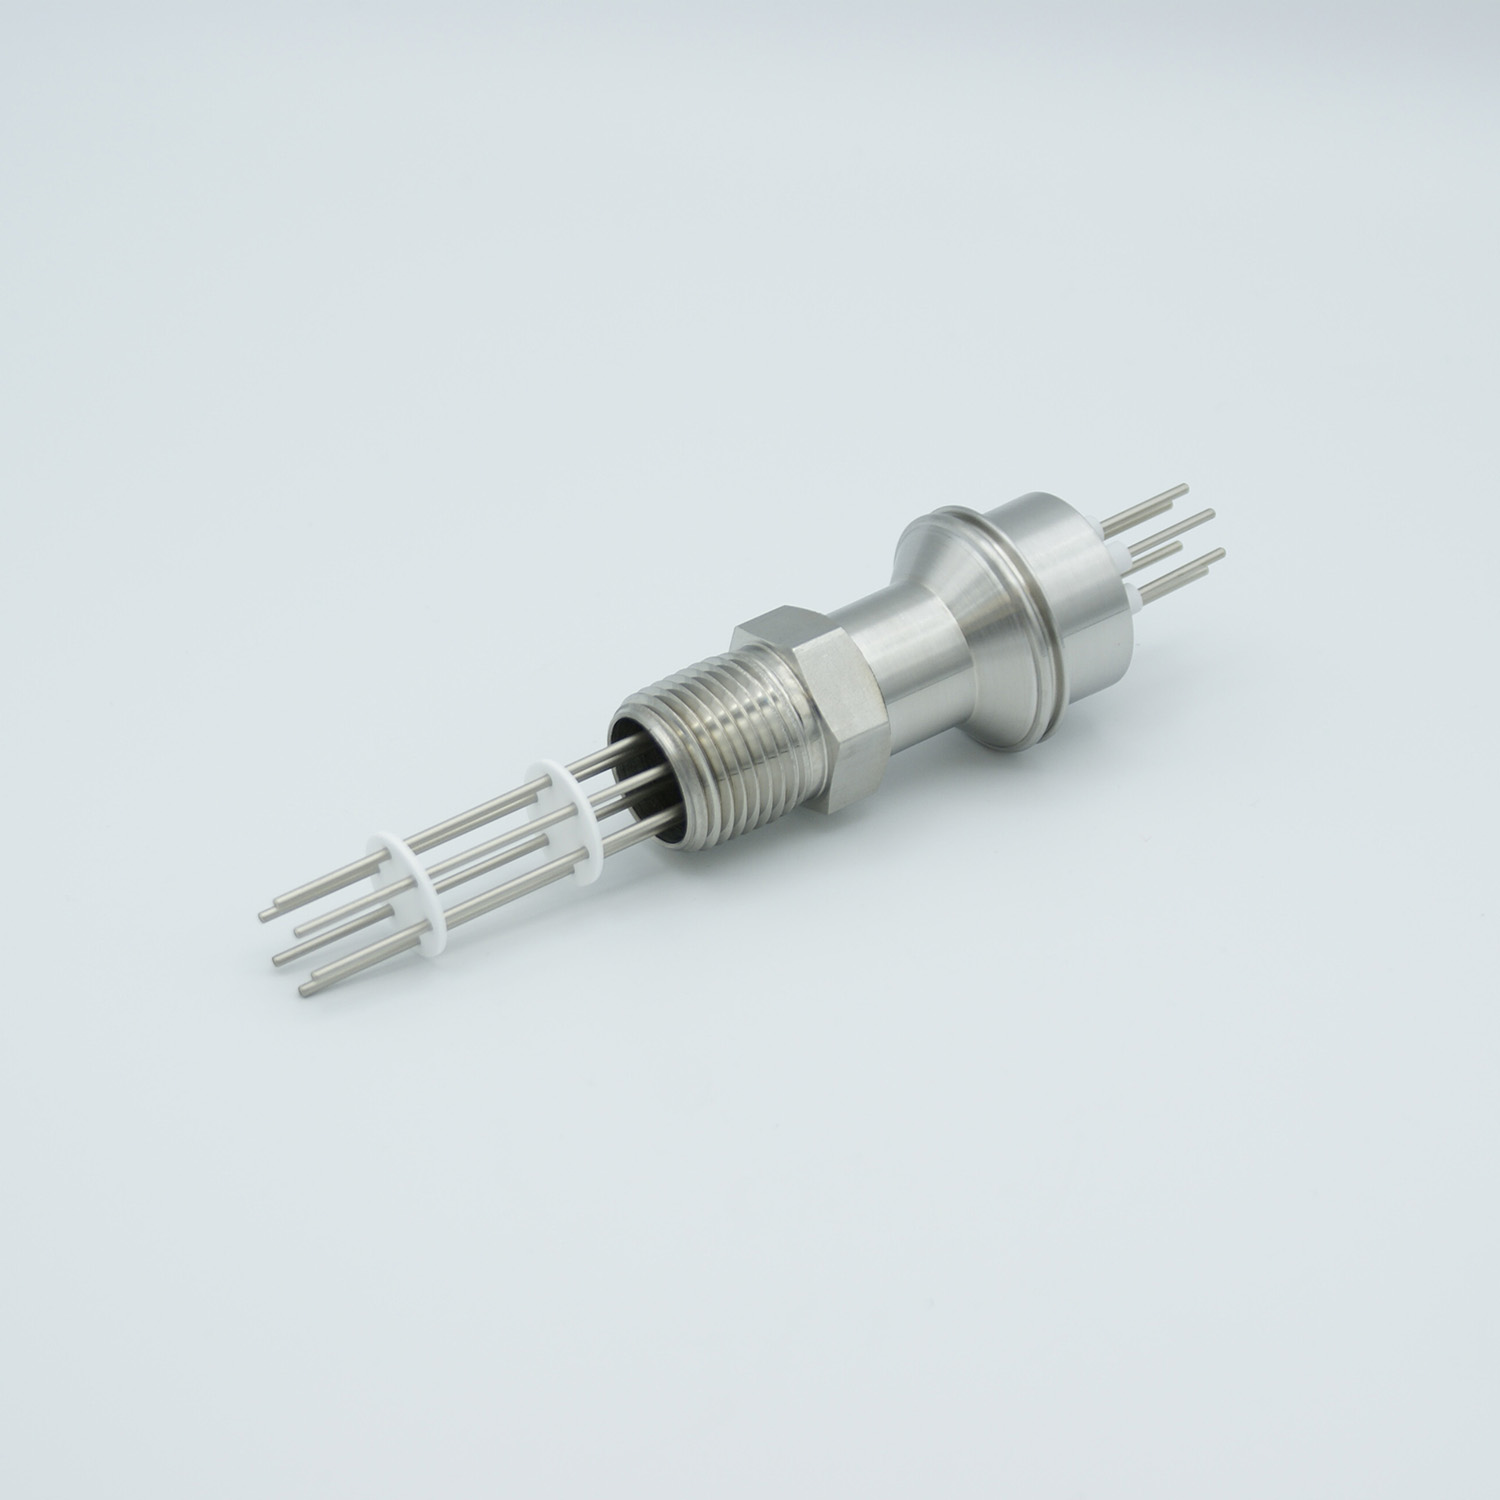 3 pair Thermocouple type-J feedthrough for push on connectors, 1/2